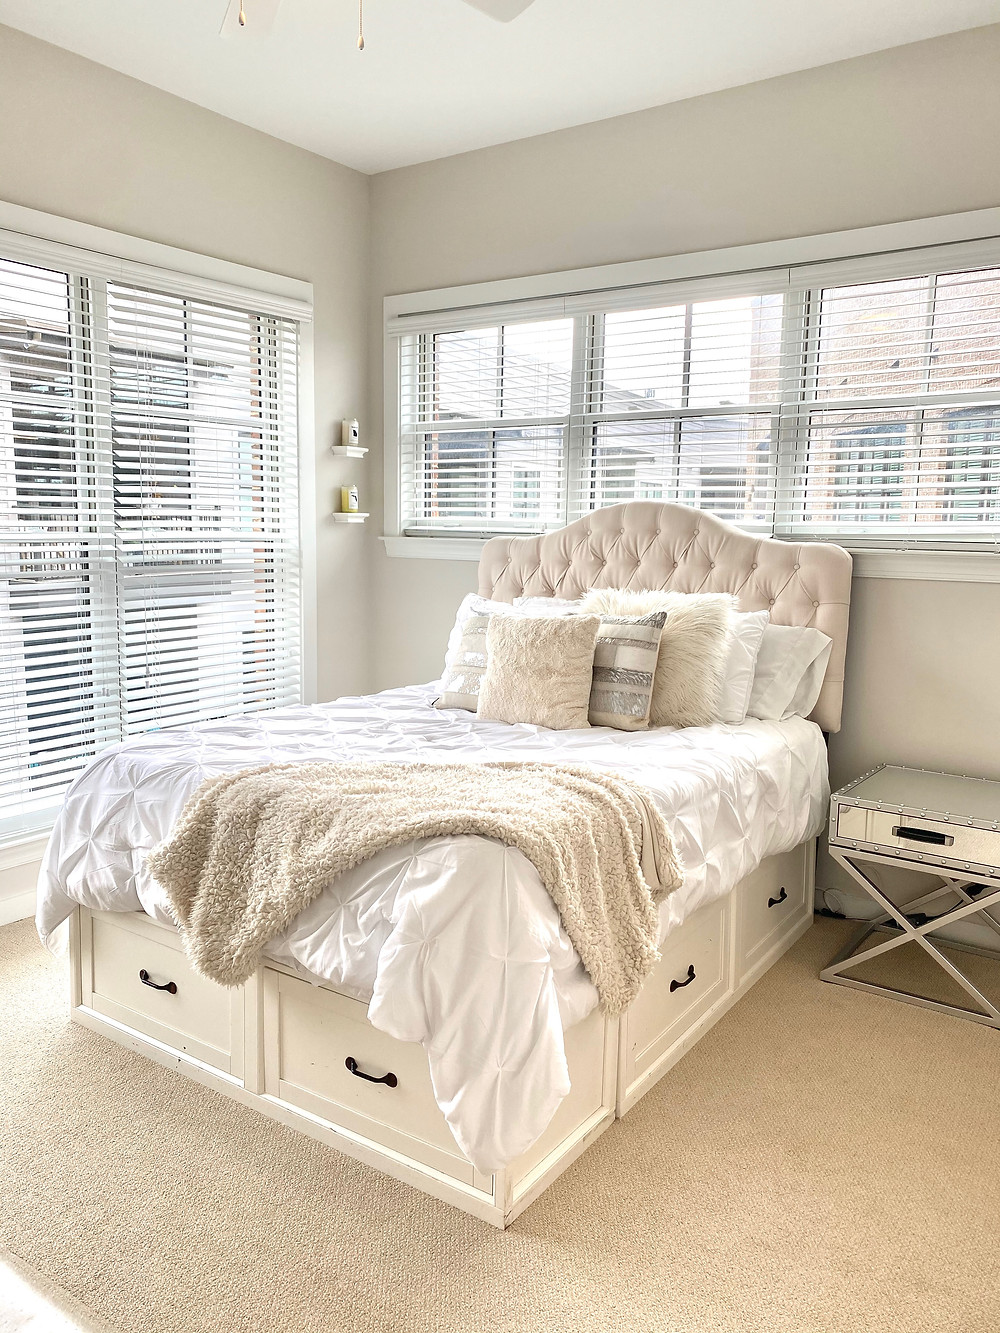 Interior Design, Apartment Style, Guest Bedroom